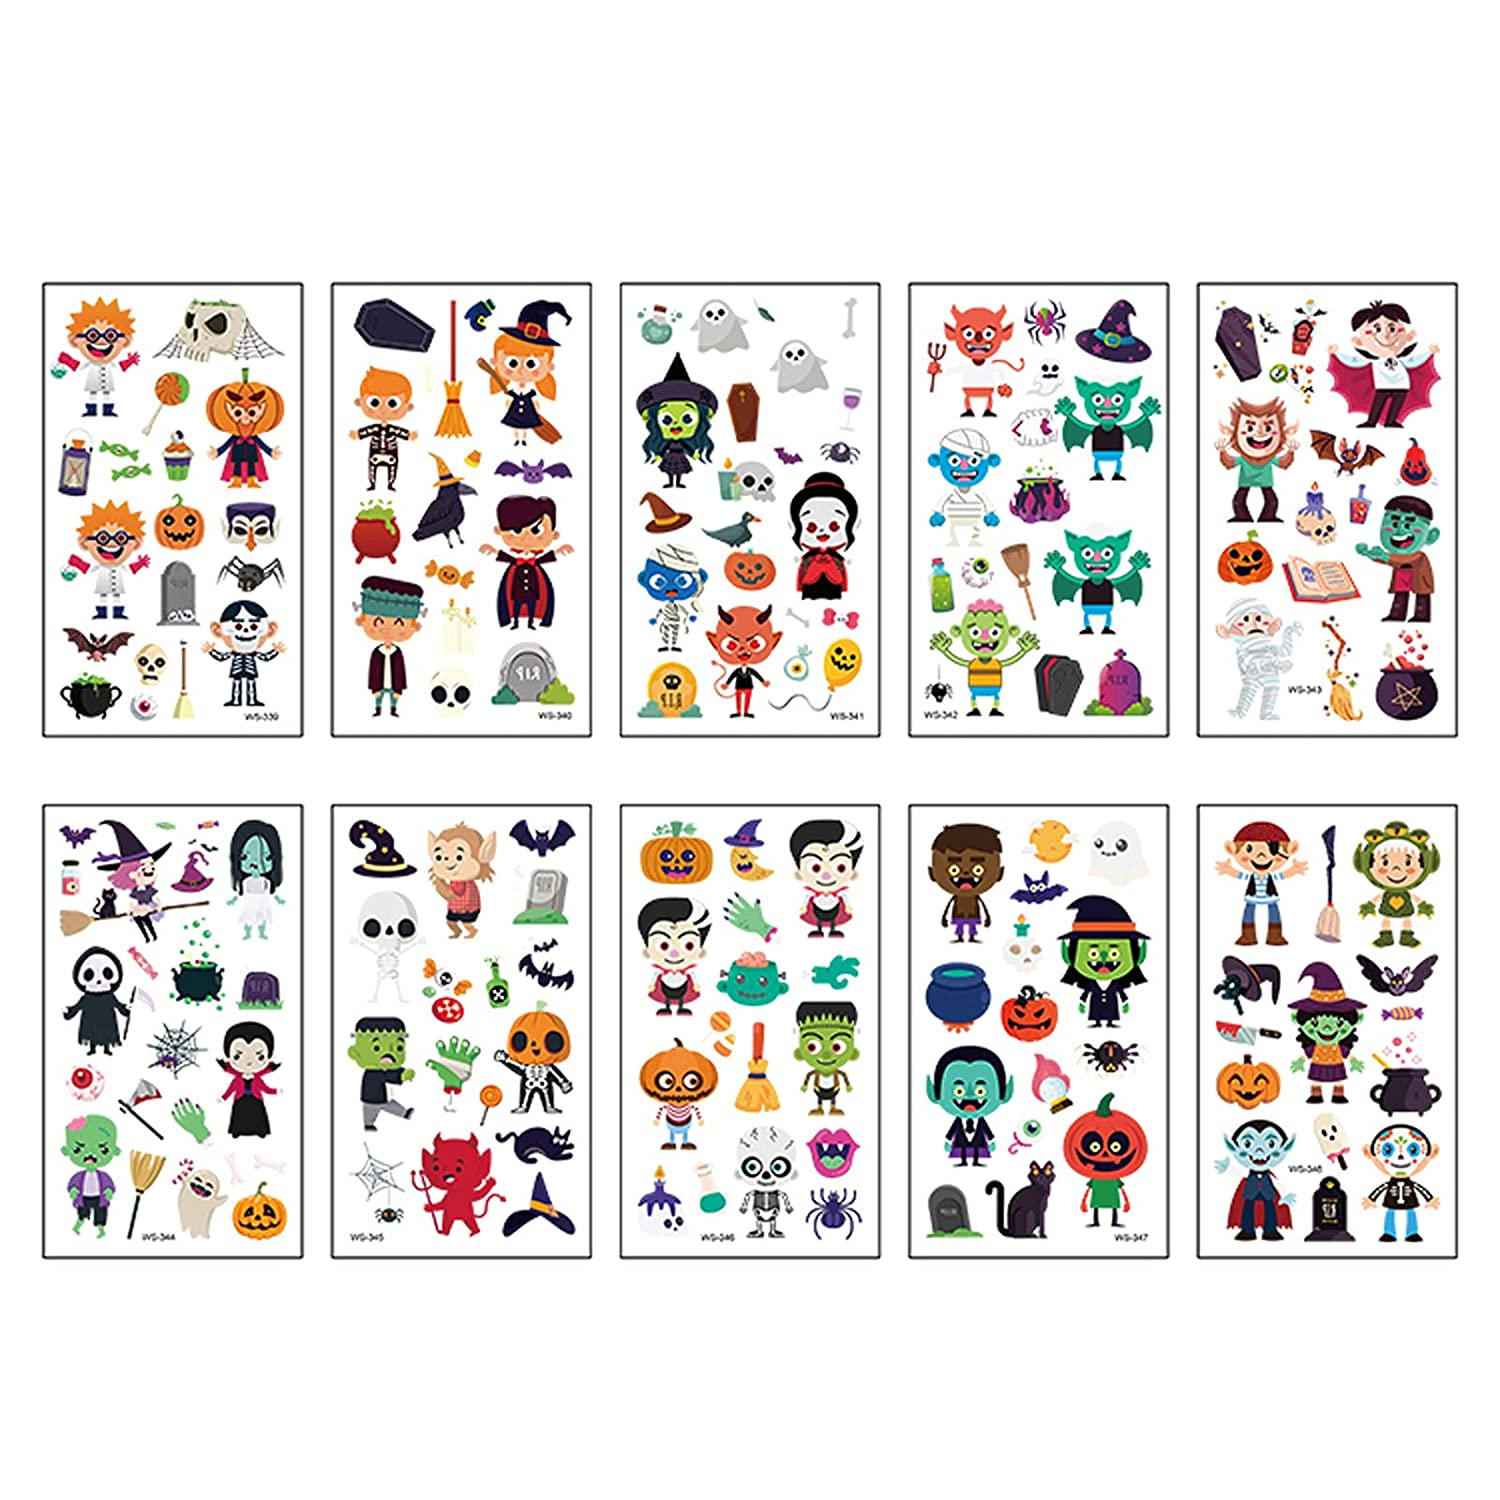 OVERMAL Halloween Temporary Tattoos for Super beauty product restock quality Max 82% OFF top 20 10 Kids Lumin Sheets